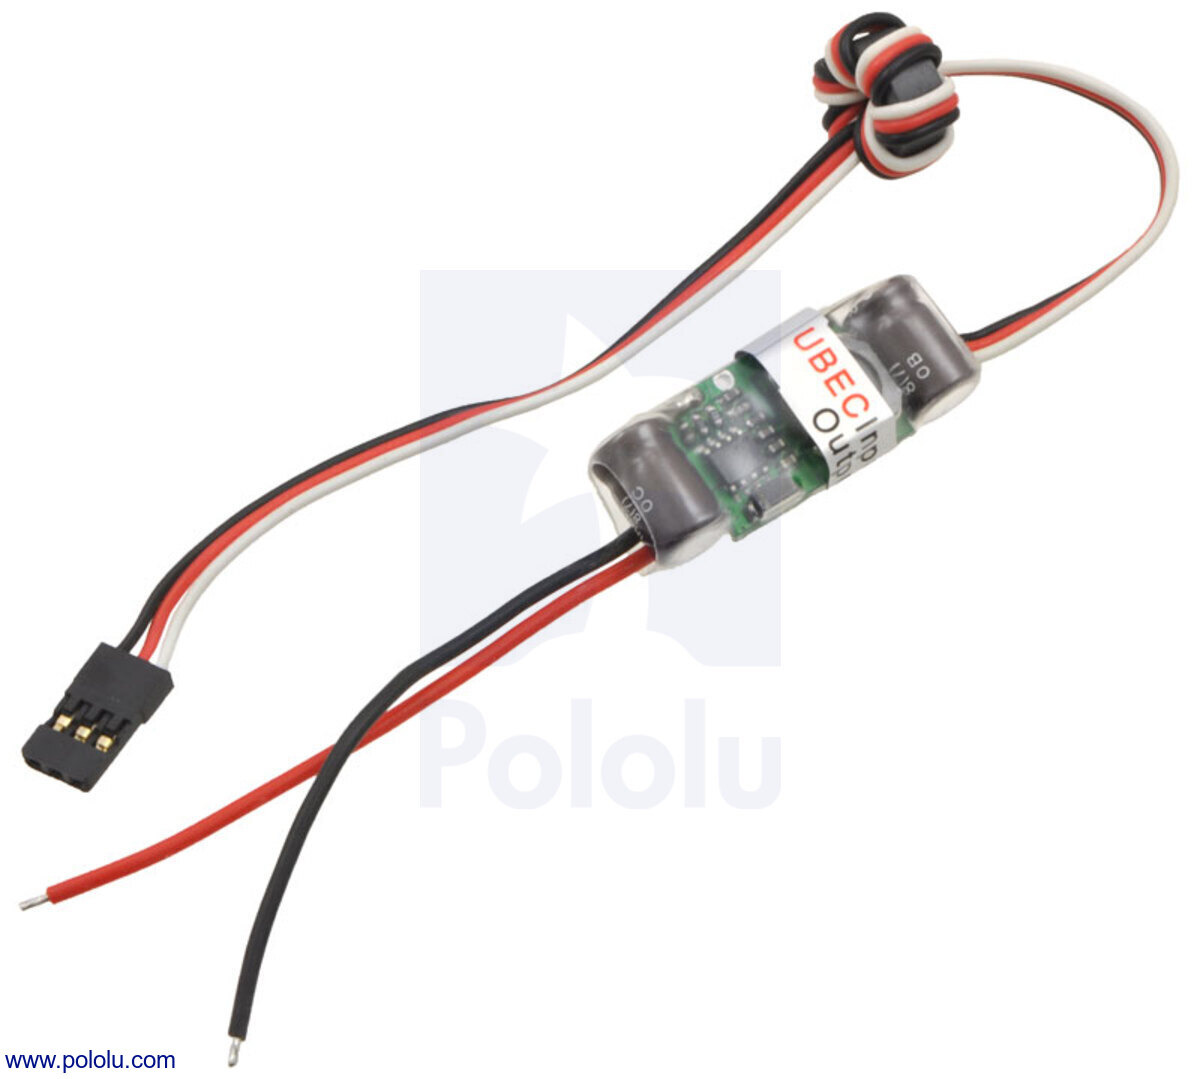 0J2887.1200?8a778505dddd38fba59fe8b00879bb49 thermal protector wiring diagram wiring diagram rp5a thermal protector wiring diagram at gsmx.co